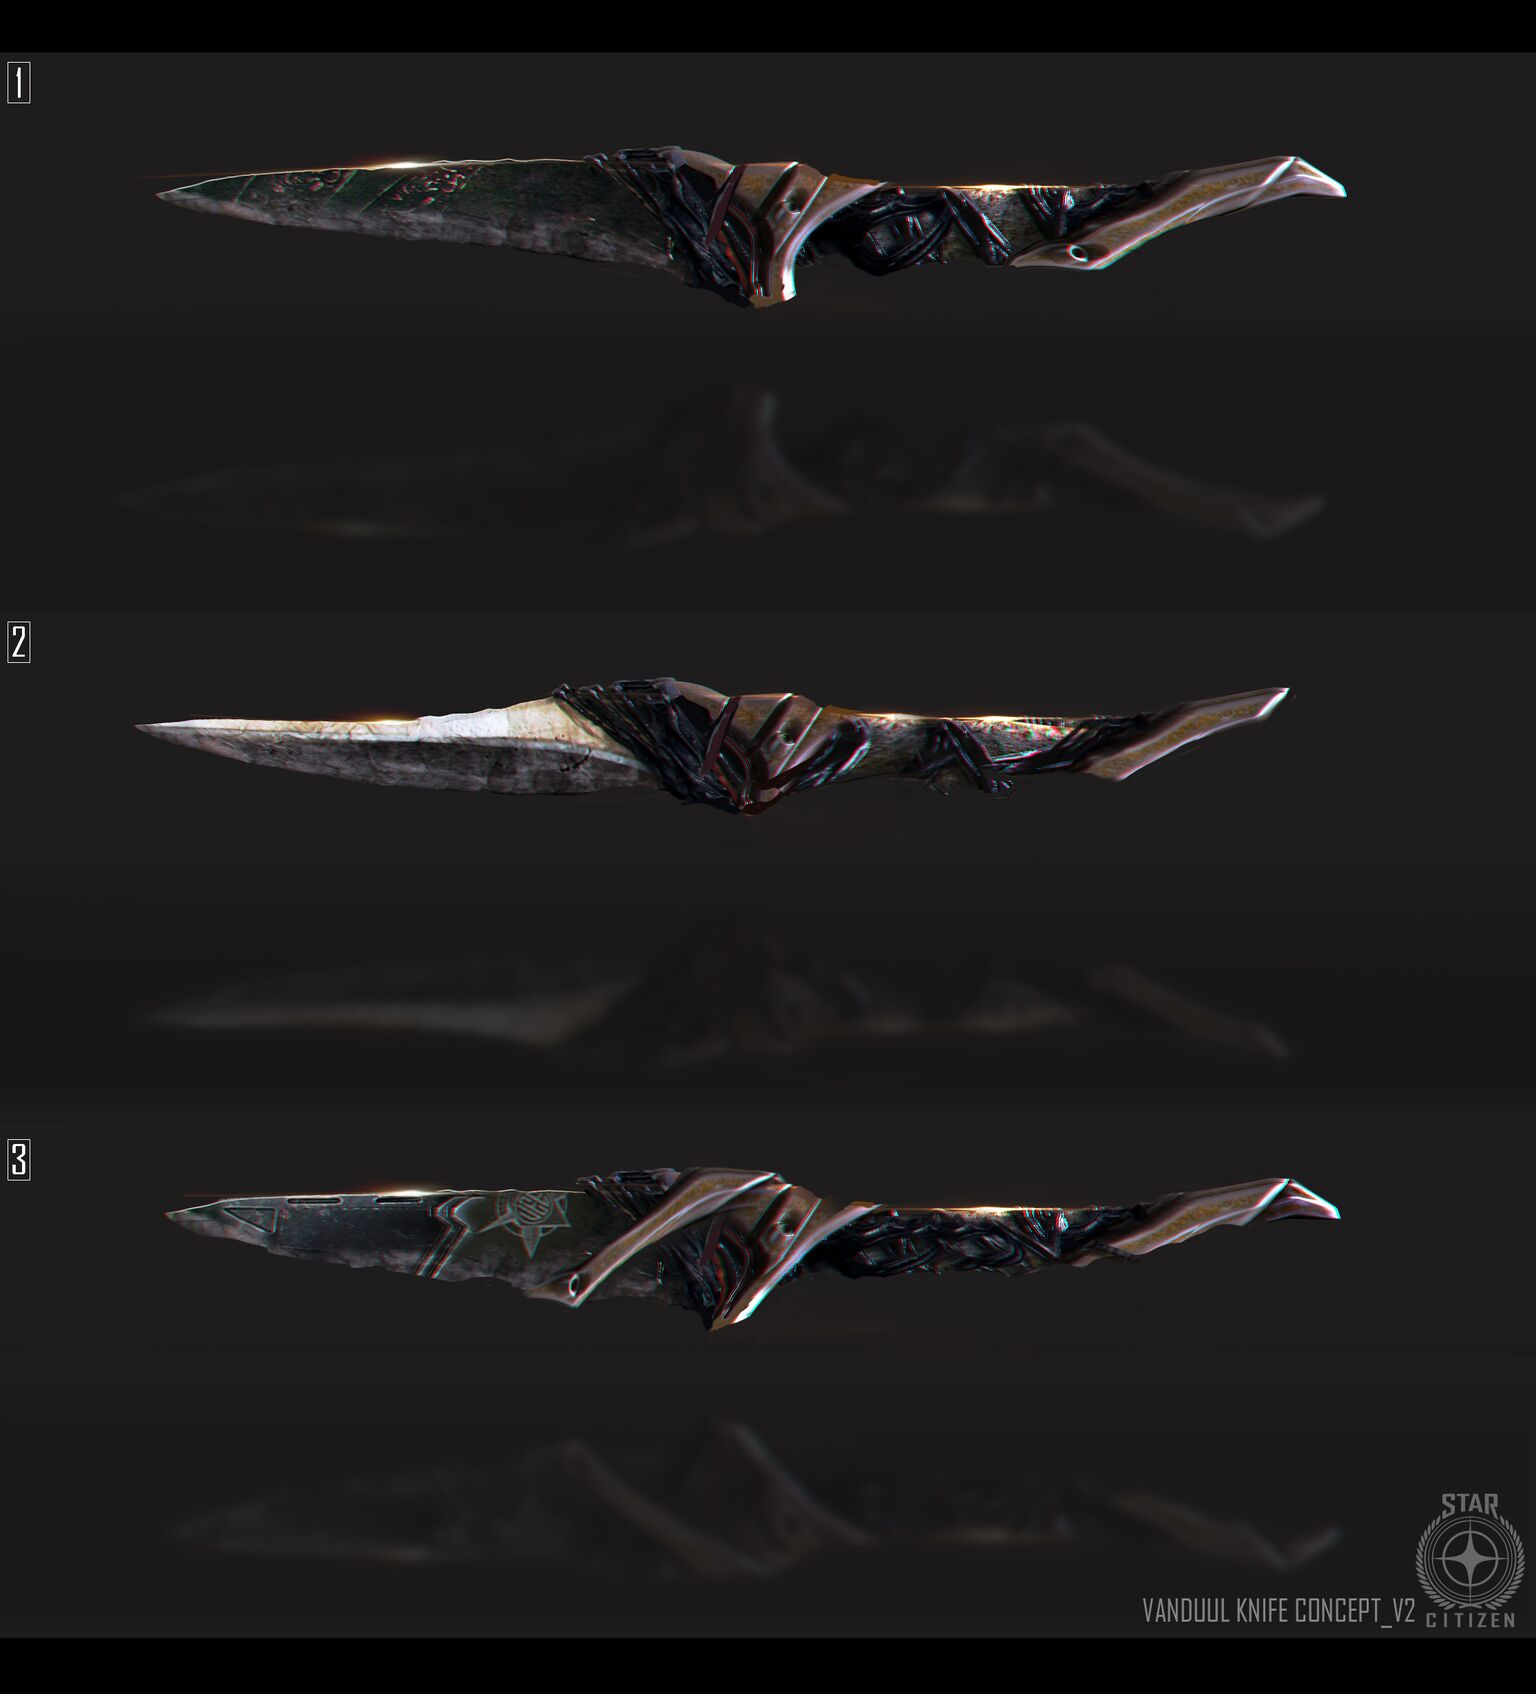 060618_VANDUUL_KNIFE_V2_preview.jpeg